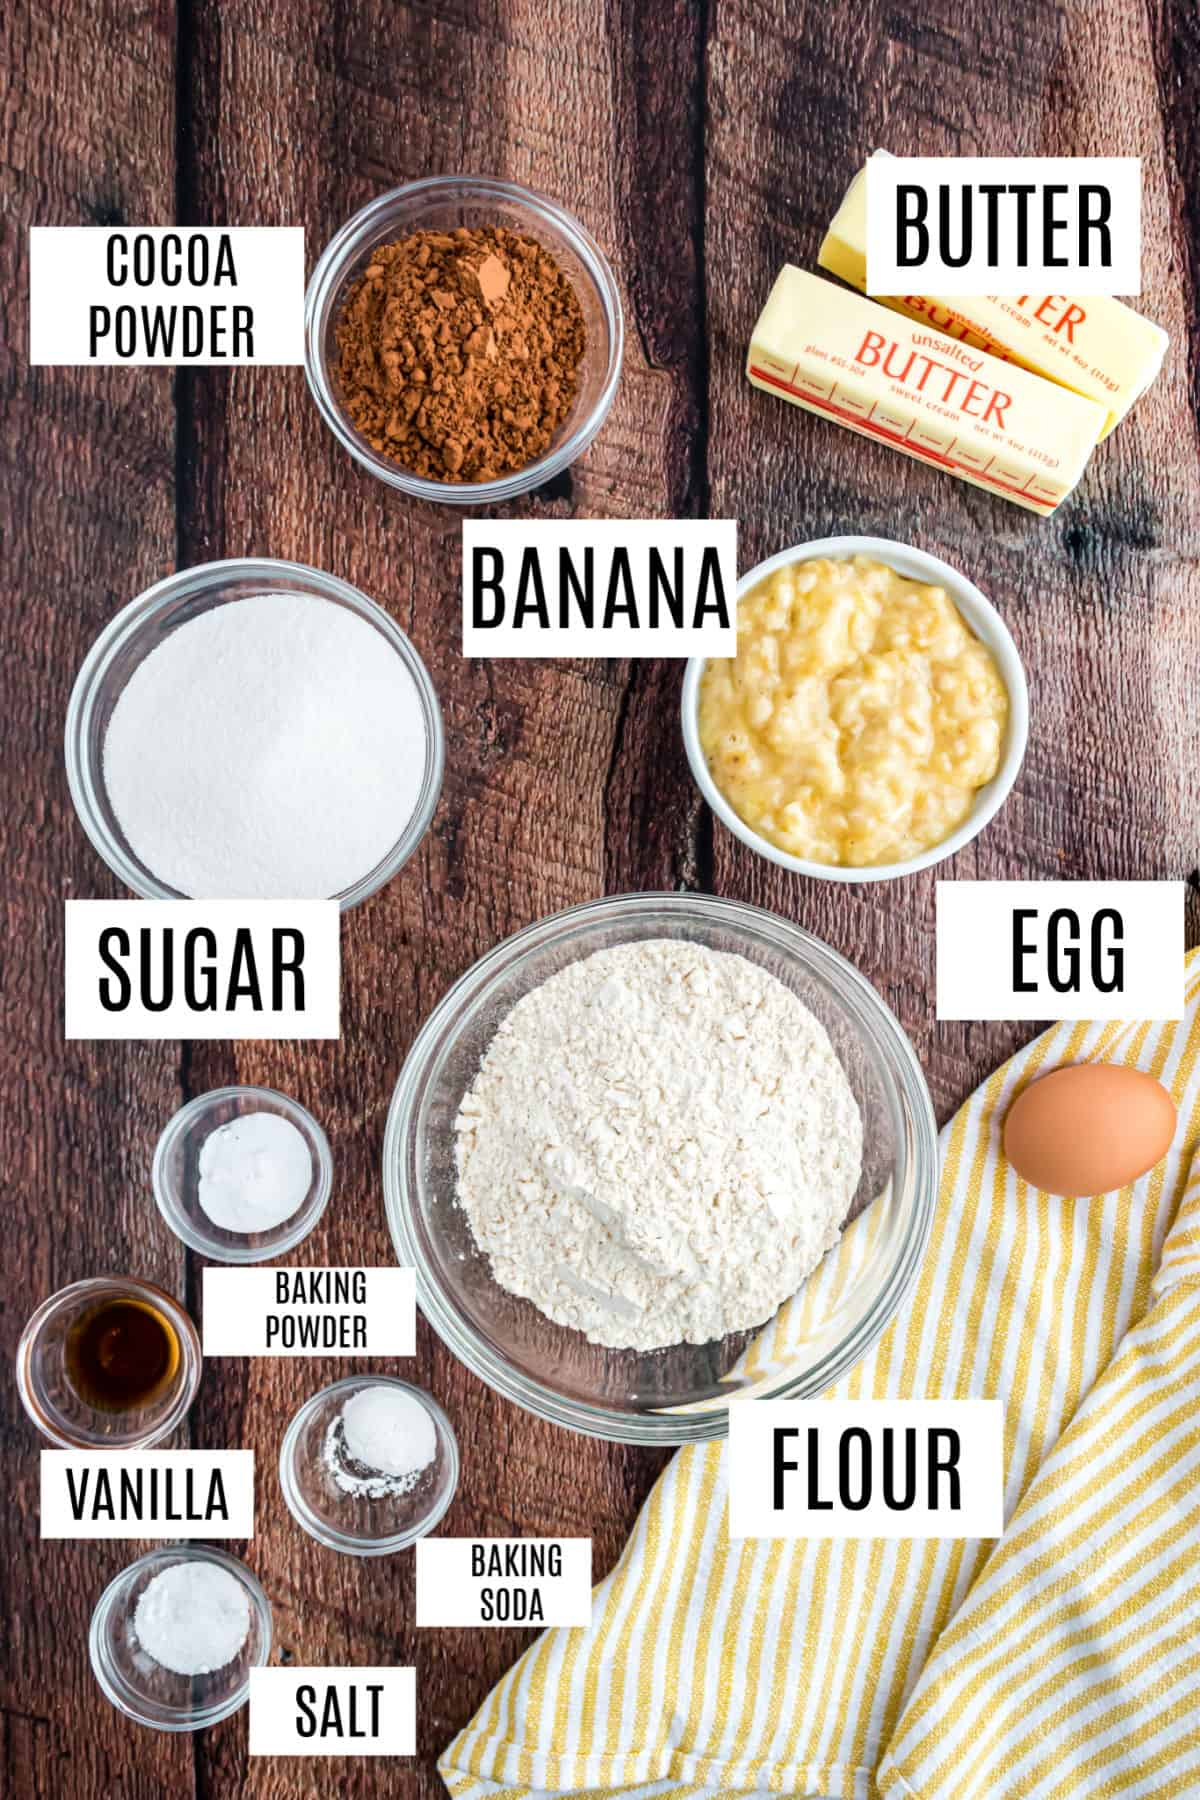 Ingredients needed for chocolate banana cake.